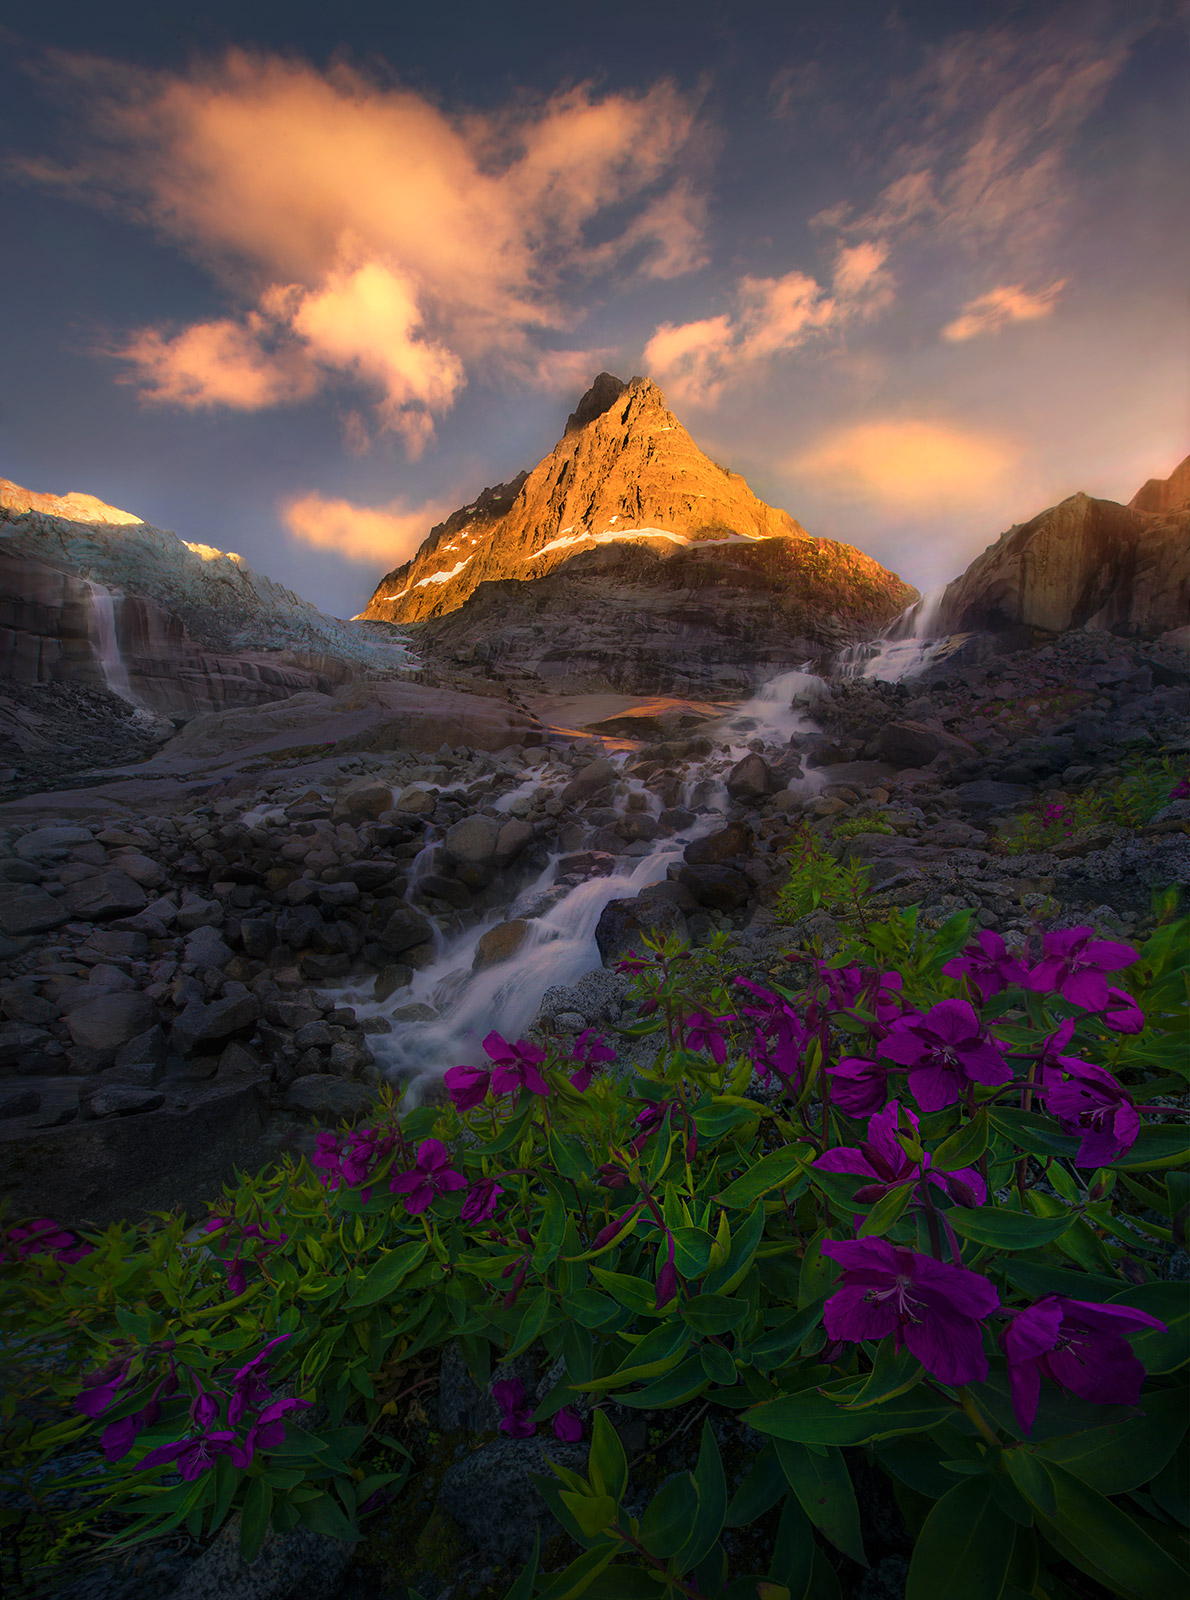 Lush summer wildflowers adorn the glacial hillside. Above, mountains reach into the sunset sky surrounded by high waterfalls...